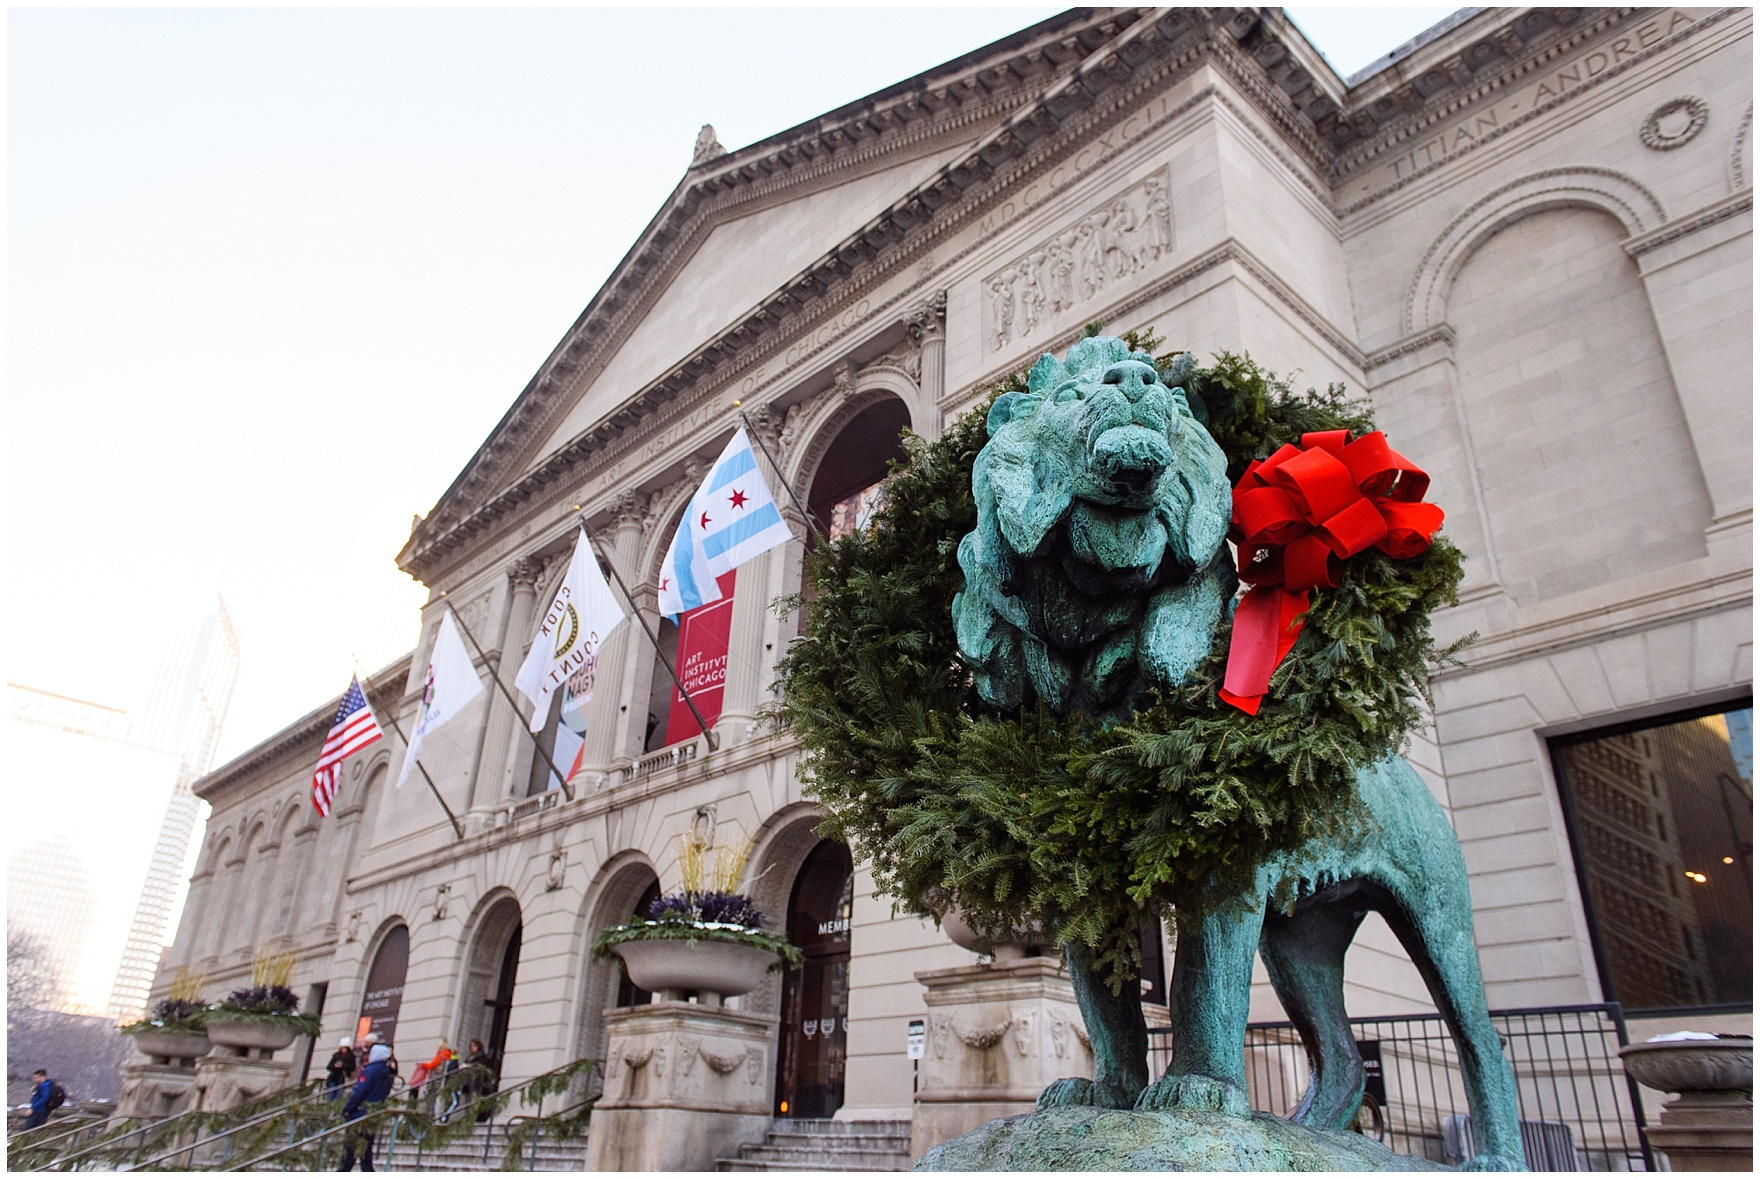 The iconic lions are decorated with wreaths for the holidays, as photographed during an Art Institute of Chicago engagement photography session.